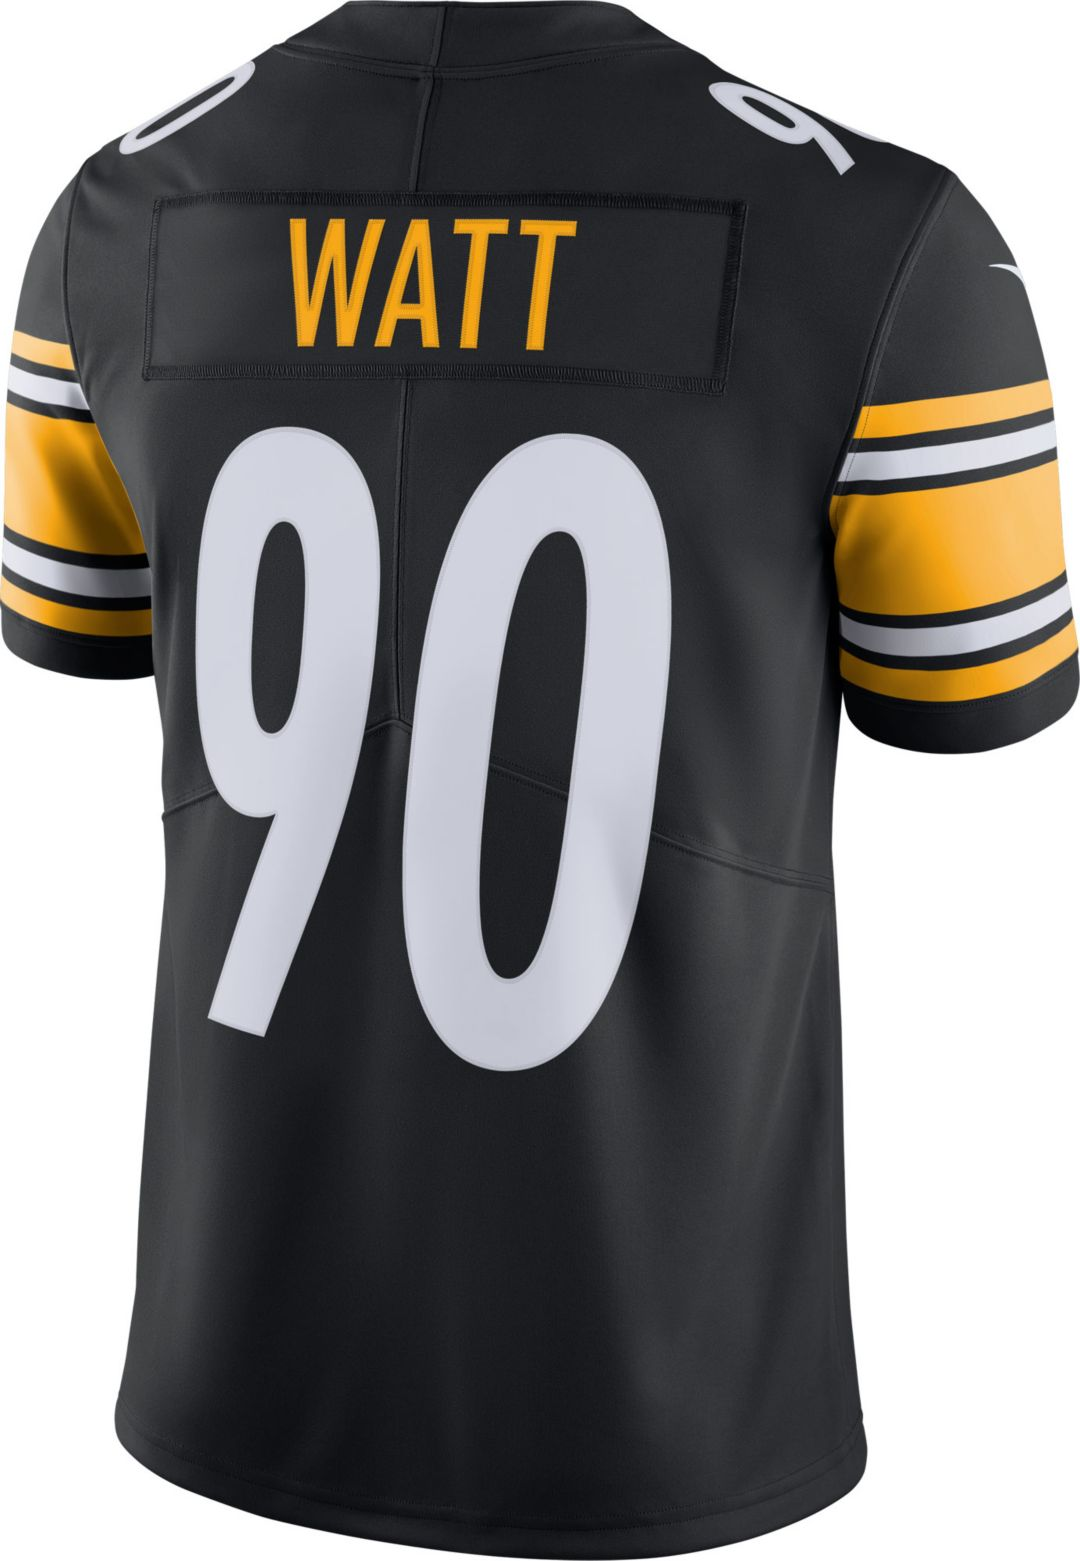 promo code 1a66f 39dbe Nike Men's Home Limited Jersey Pittsburgh Steelers T.J. Watt #90